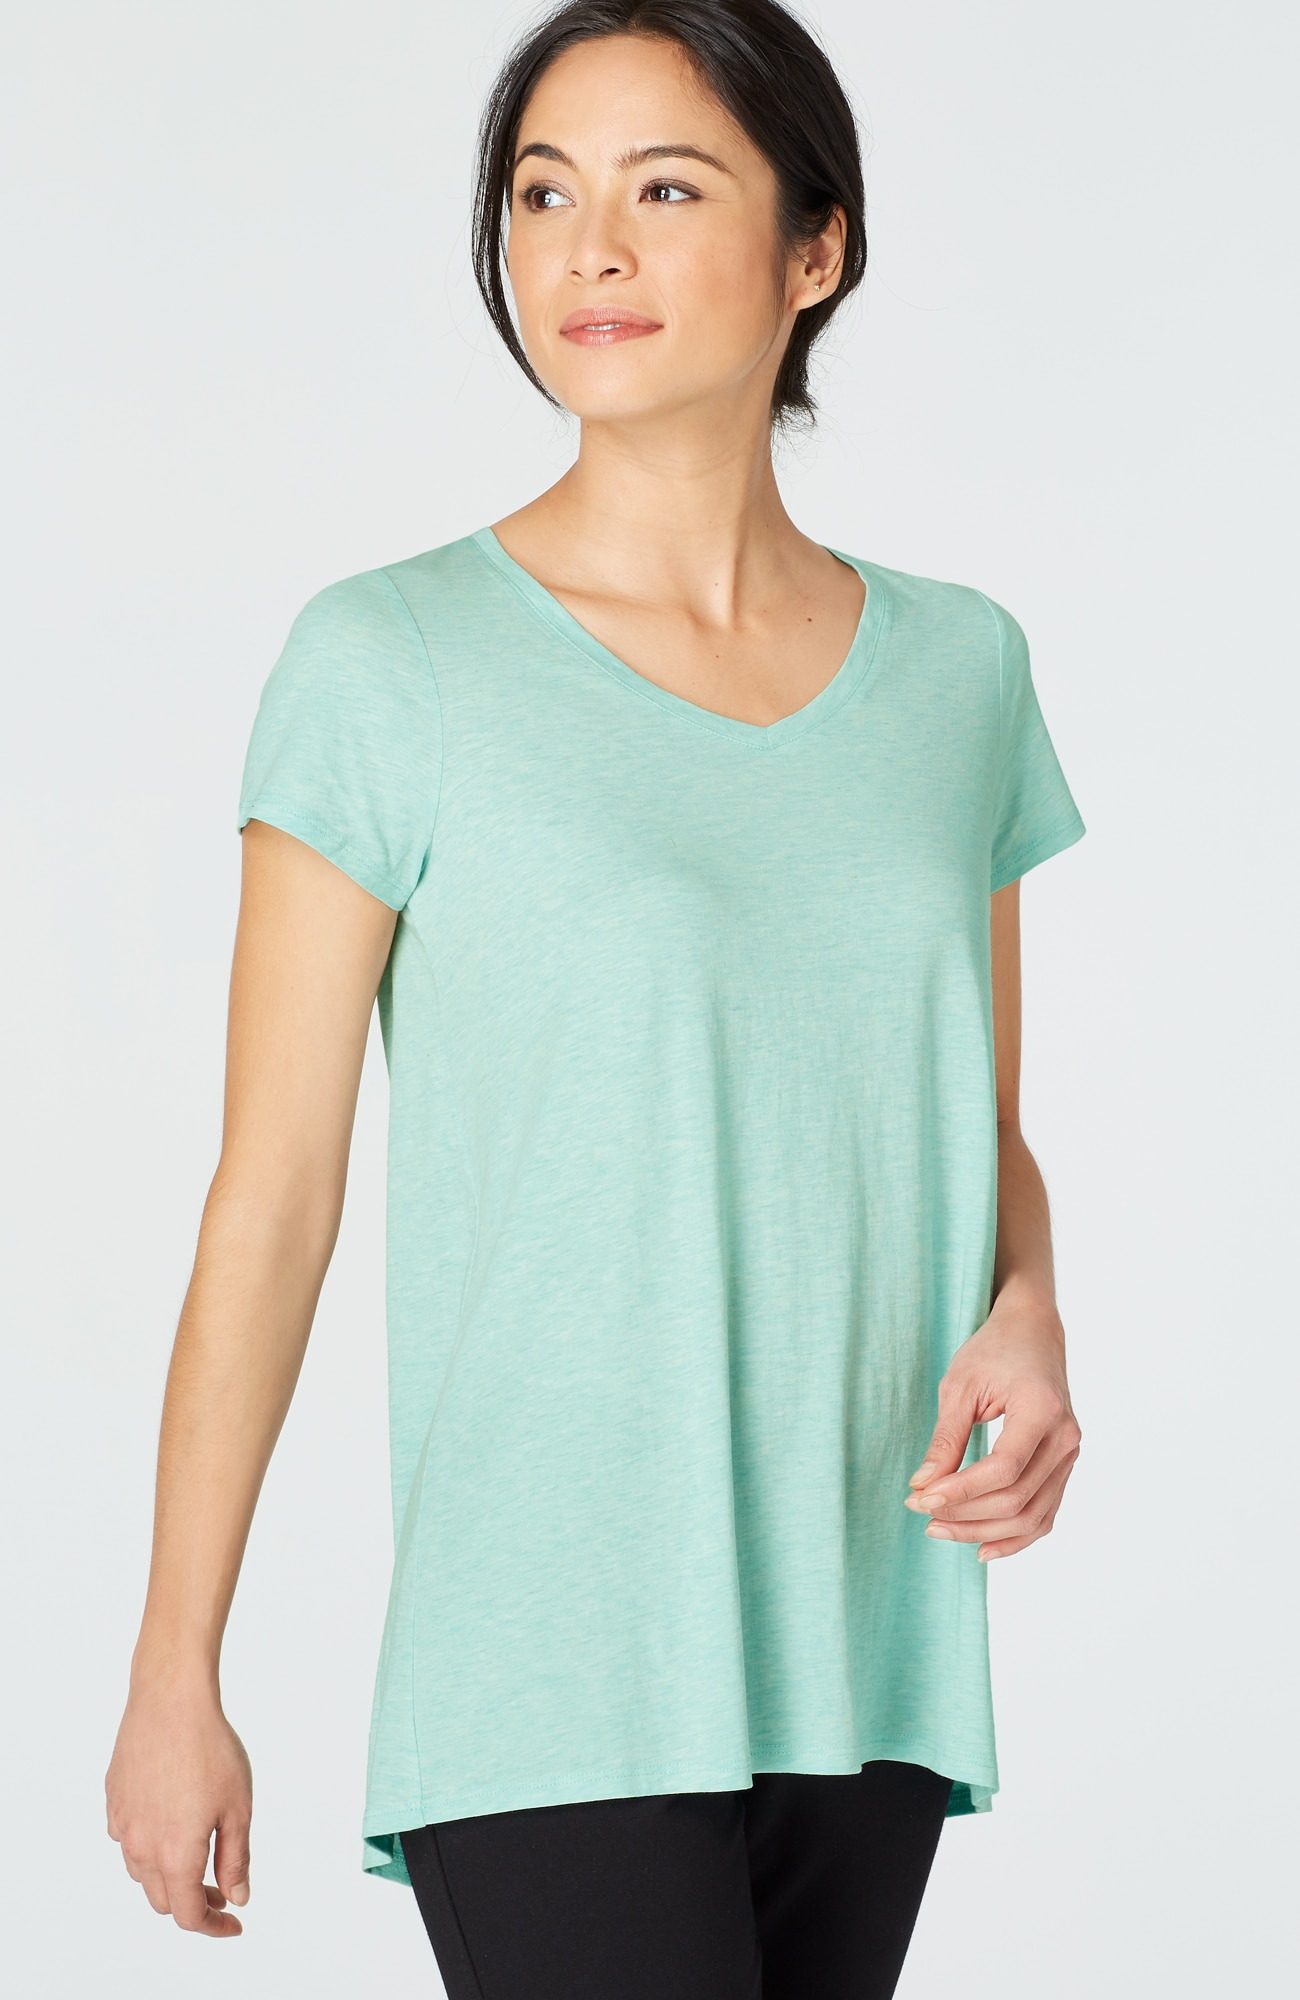 Pure Jill shirred-back elliptical tee